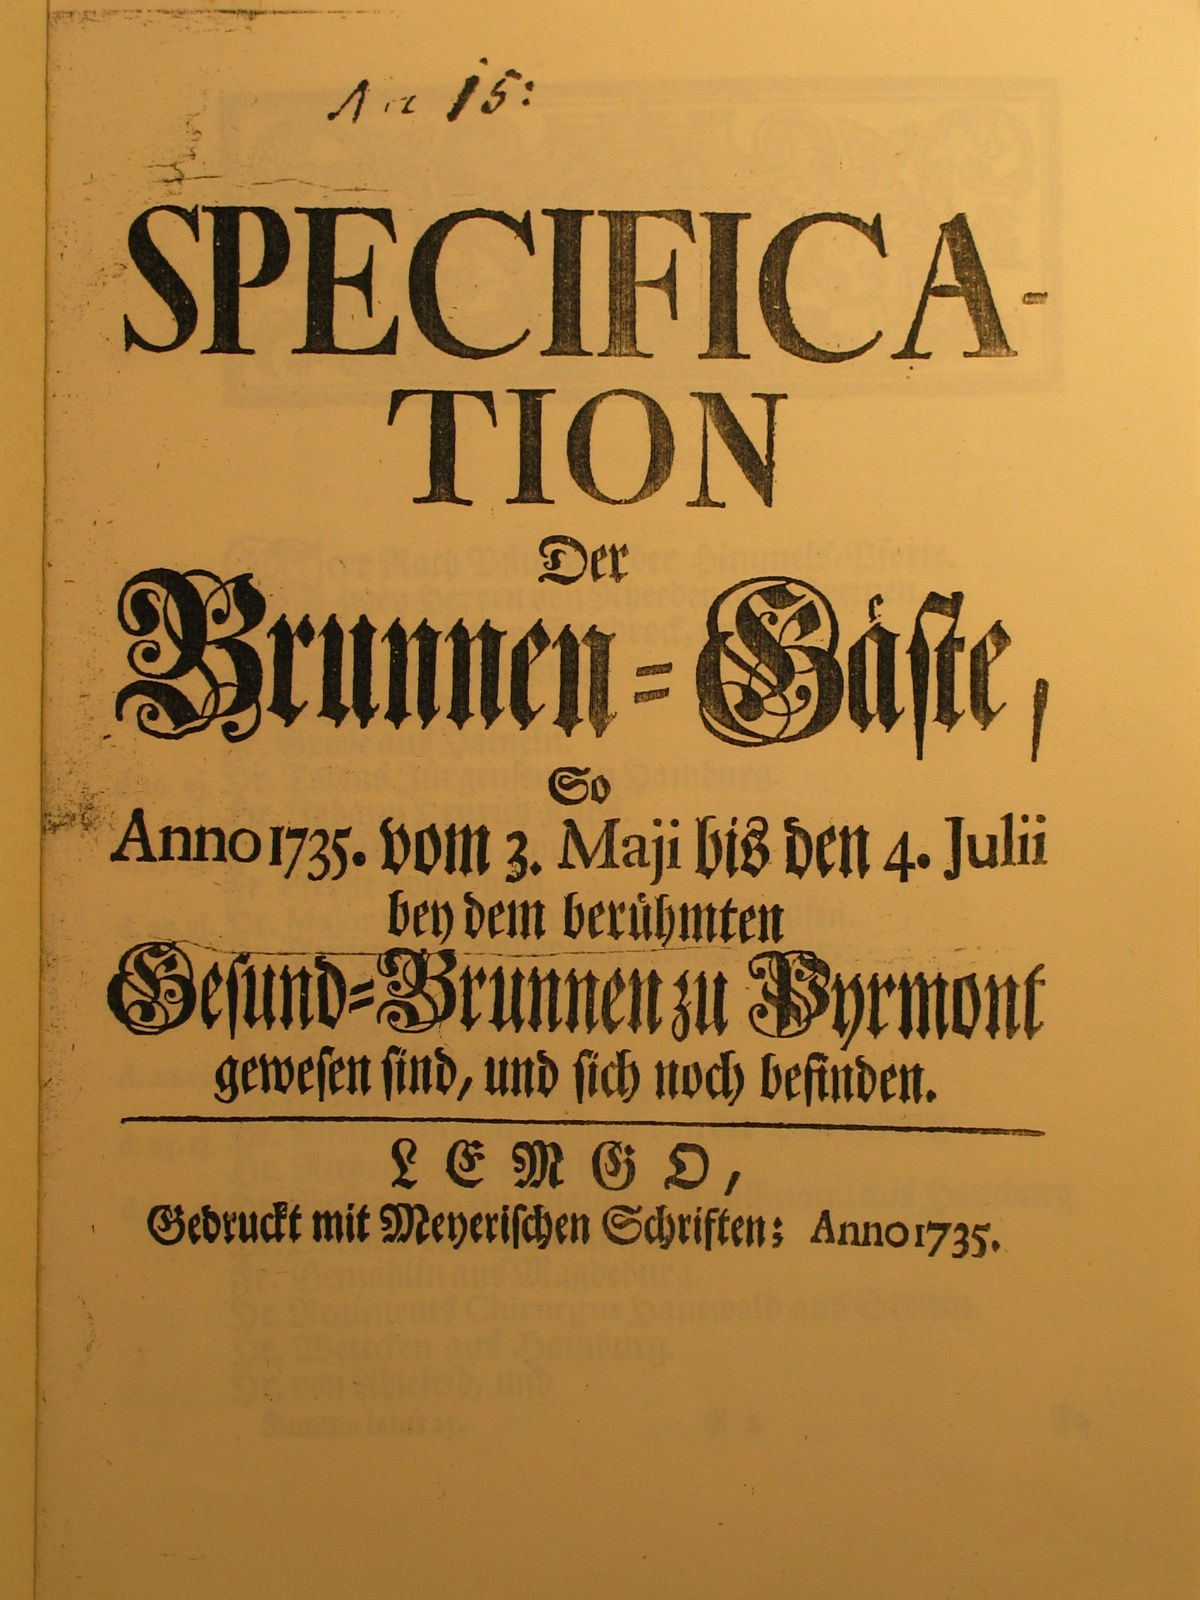 Specification der Brunnen-Gäste Anno 1735 - Deckblatt (Museum im Schloss Bad Pyrmont CC BY-NC-SA)